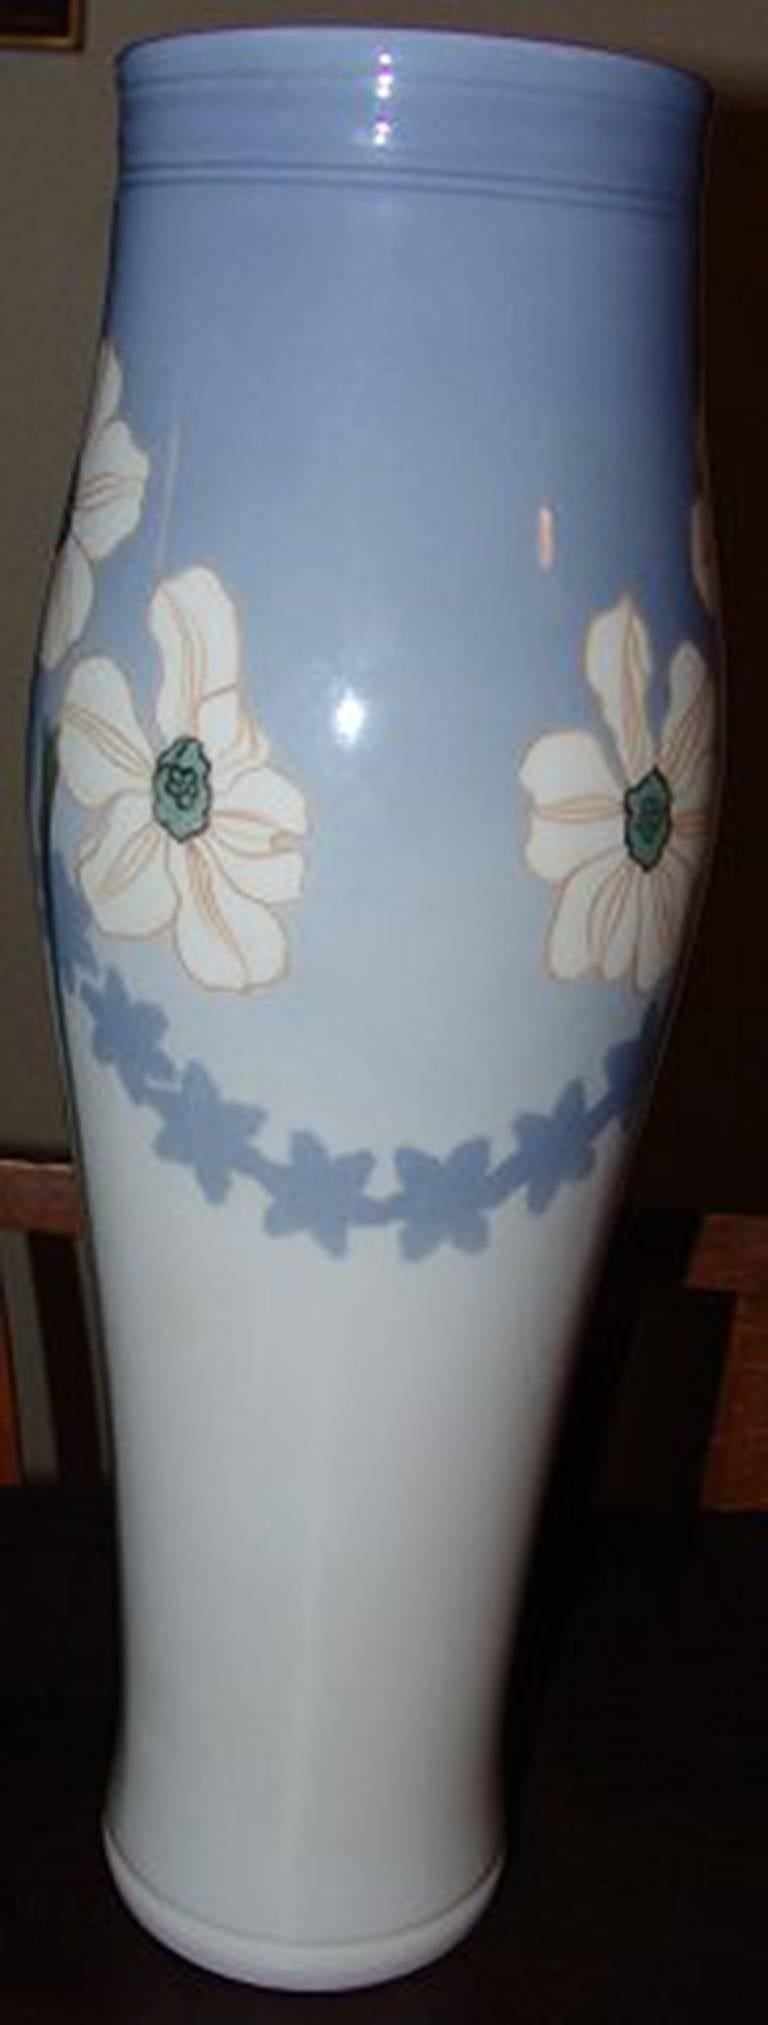 Royal Copenhagen unique vase by Anna Smidth #8486. Measures 45 cm and is in perfect condition. Signed by Anna Smith and date code is 2 and T.